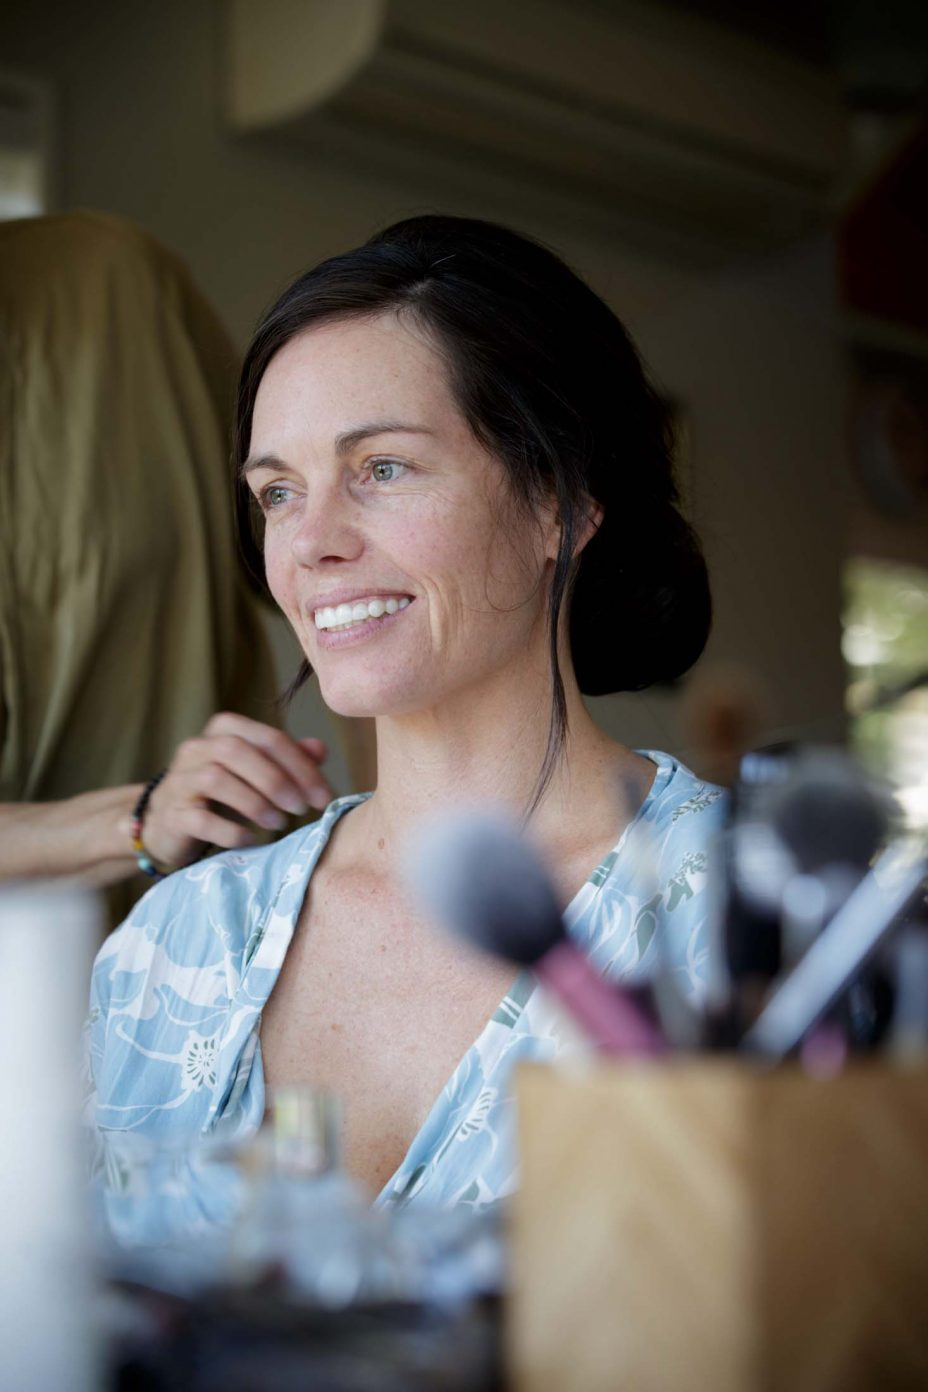 Bride in blue robe smiles during makeup preparations